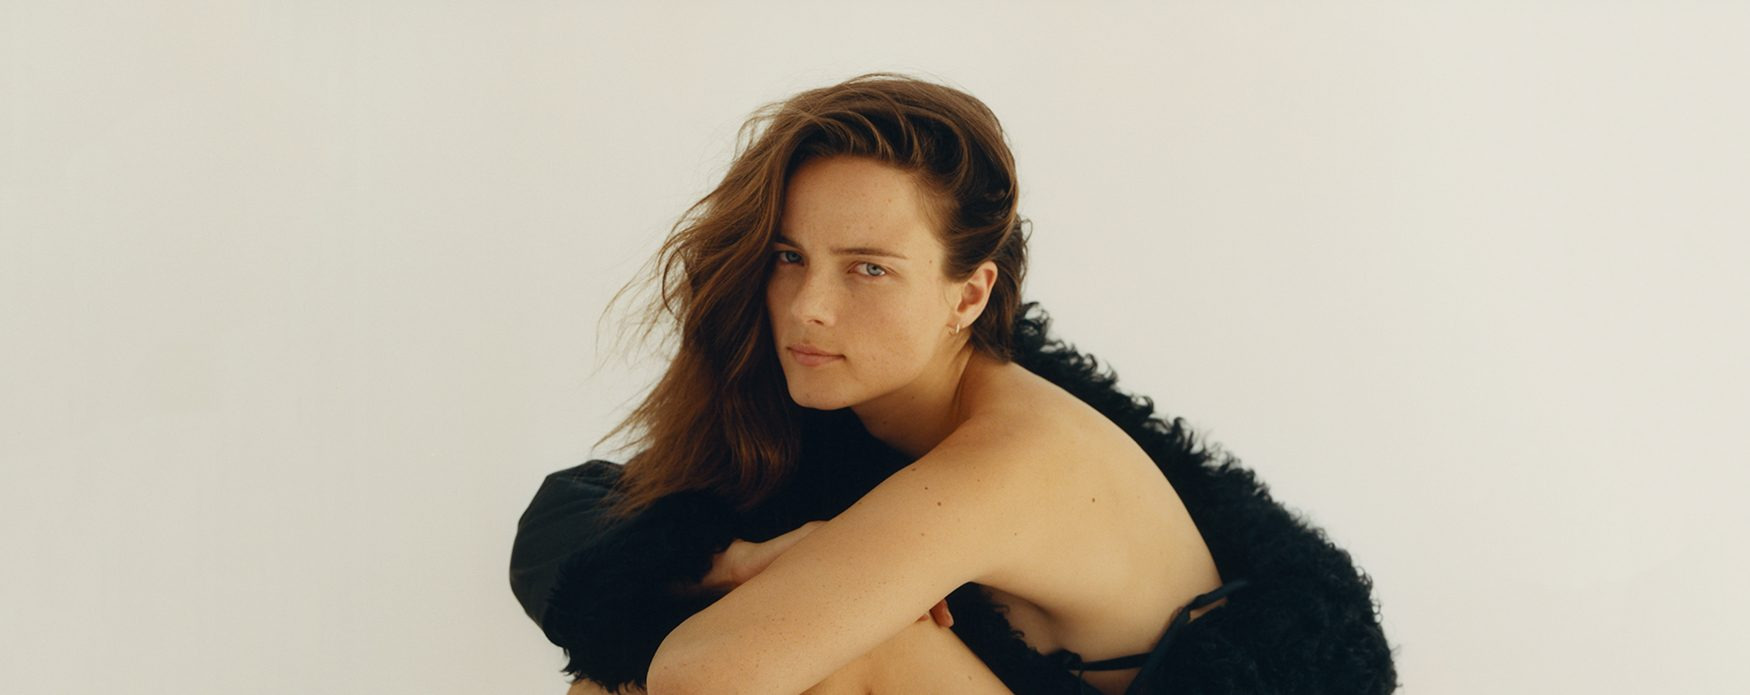 Anna de Rijk photographed by Ben Parks for Manifesto Magazine, September 2018